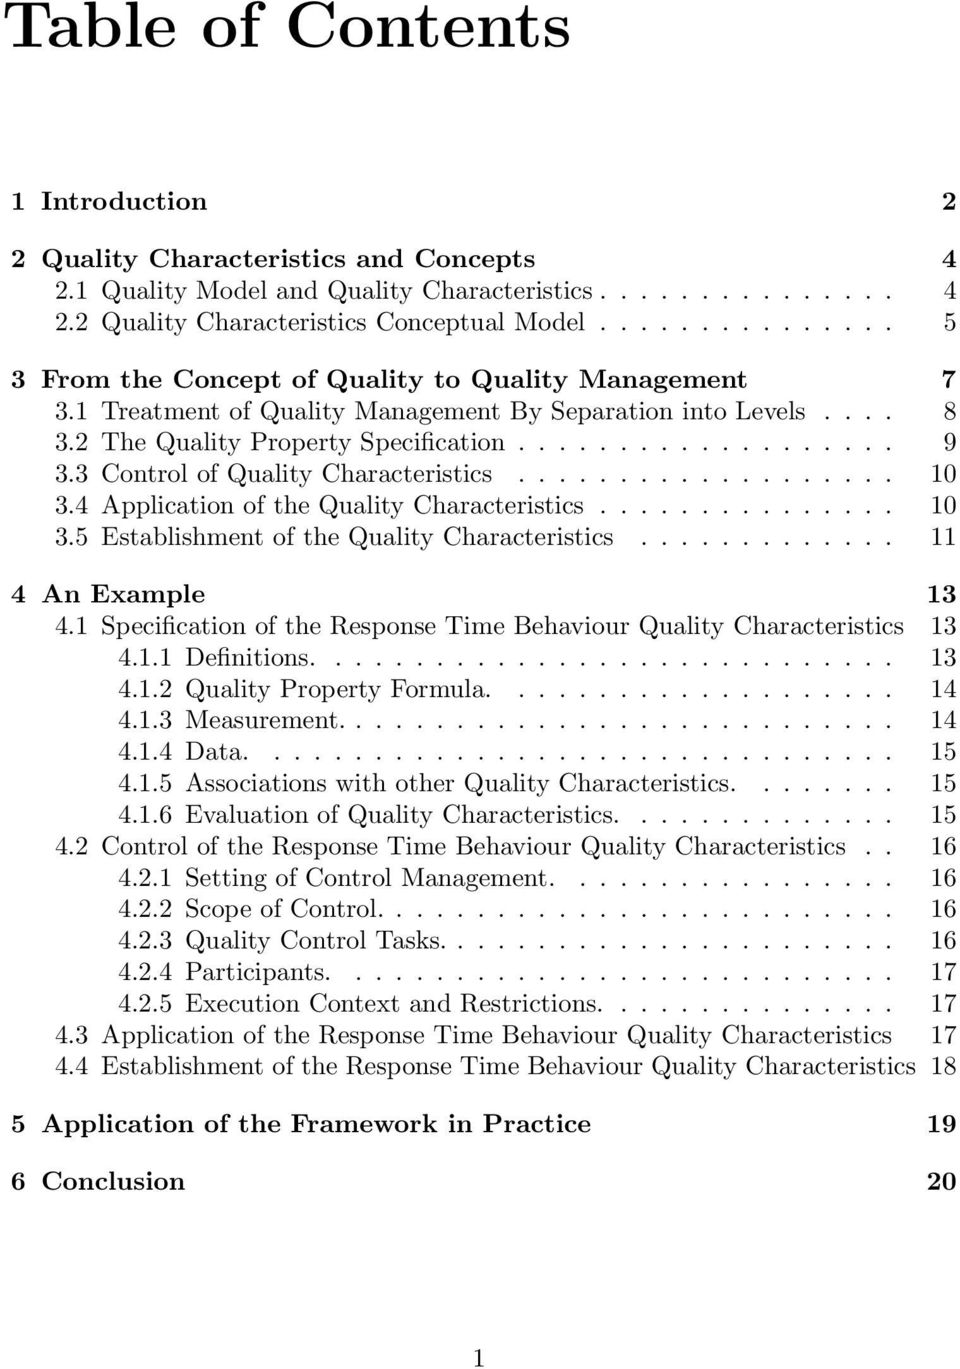 3 Control of Quality Characteristics................... 10 3.4 Application of the Quality Characteristics............... 10 3.5 Establishment of the Quality Characteristics............. 11 4 An Example 13 4.